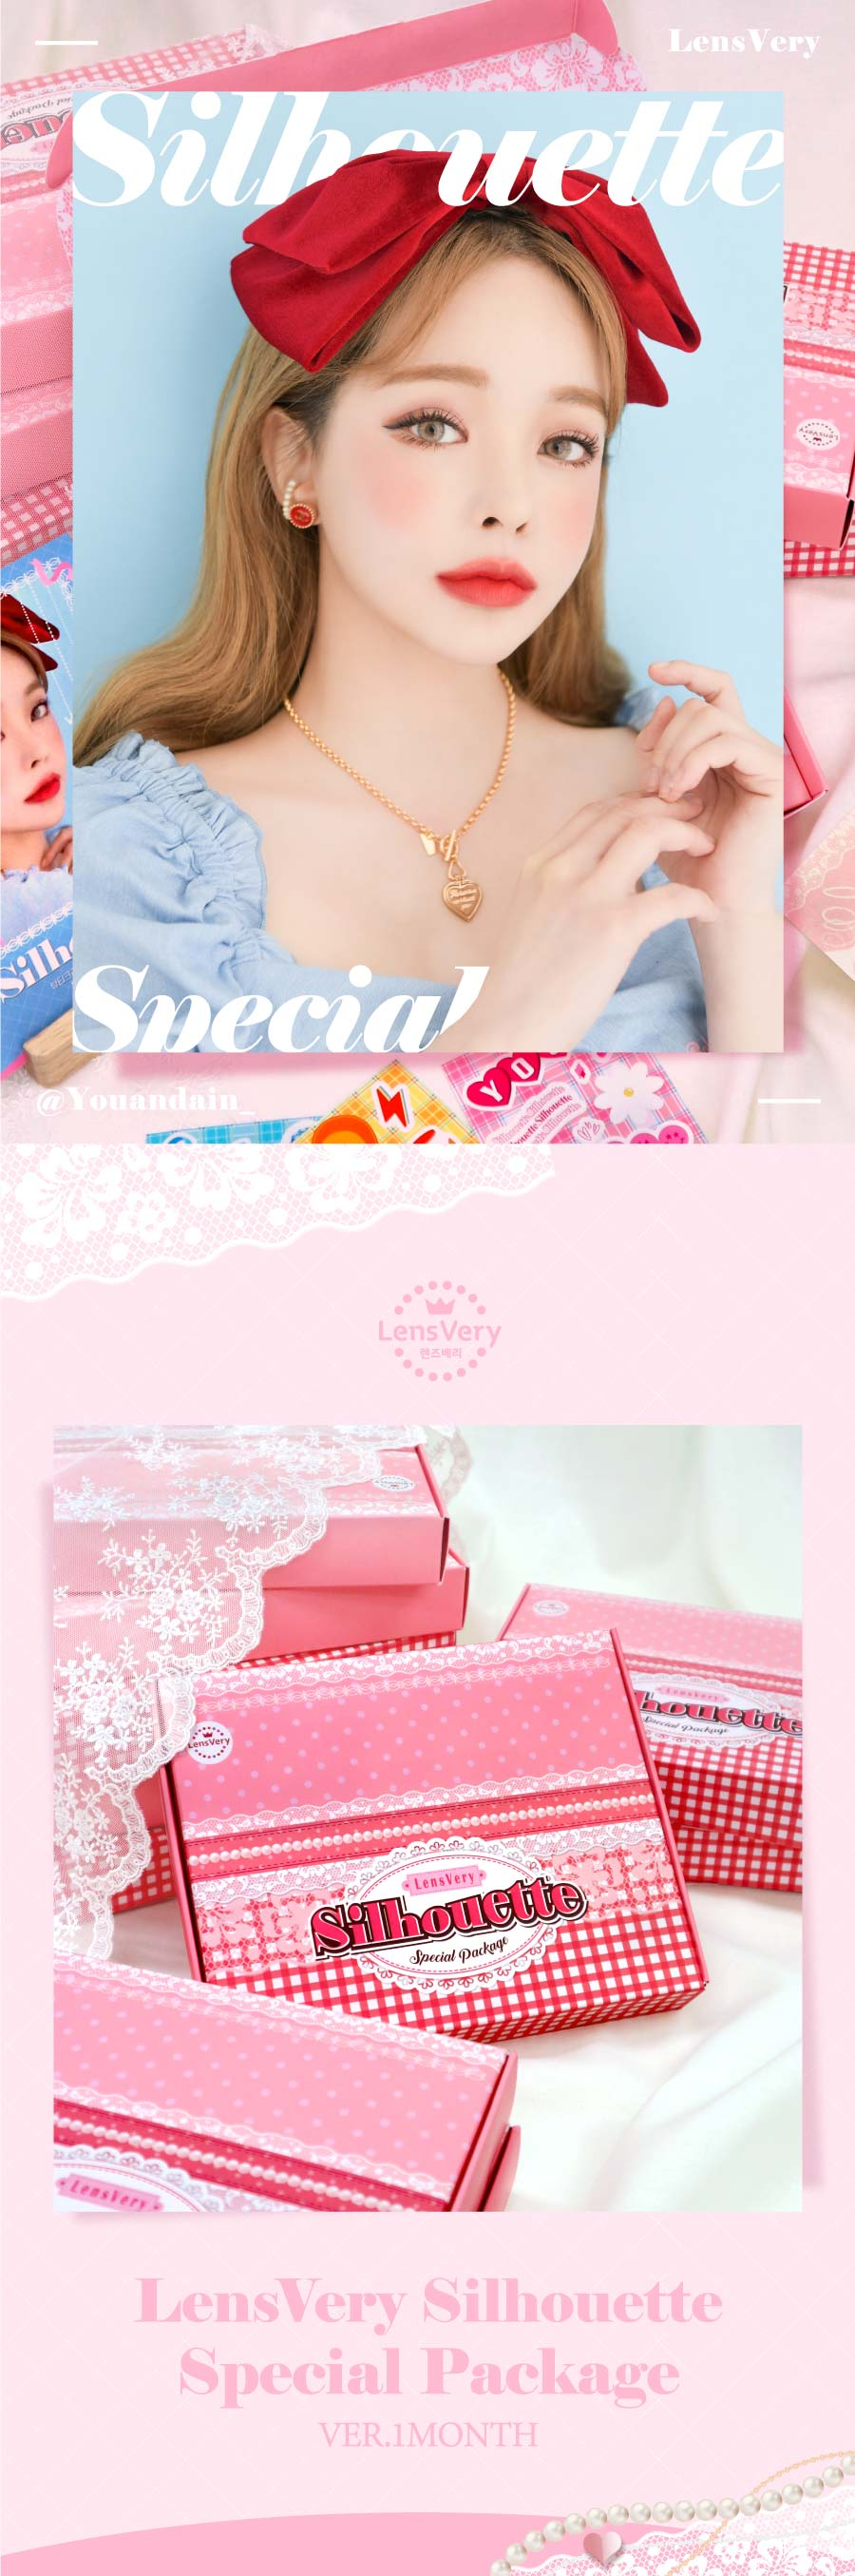 silhouette-monthly-special-package-korean-colored-lenses2.jpg